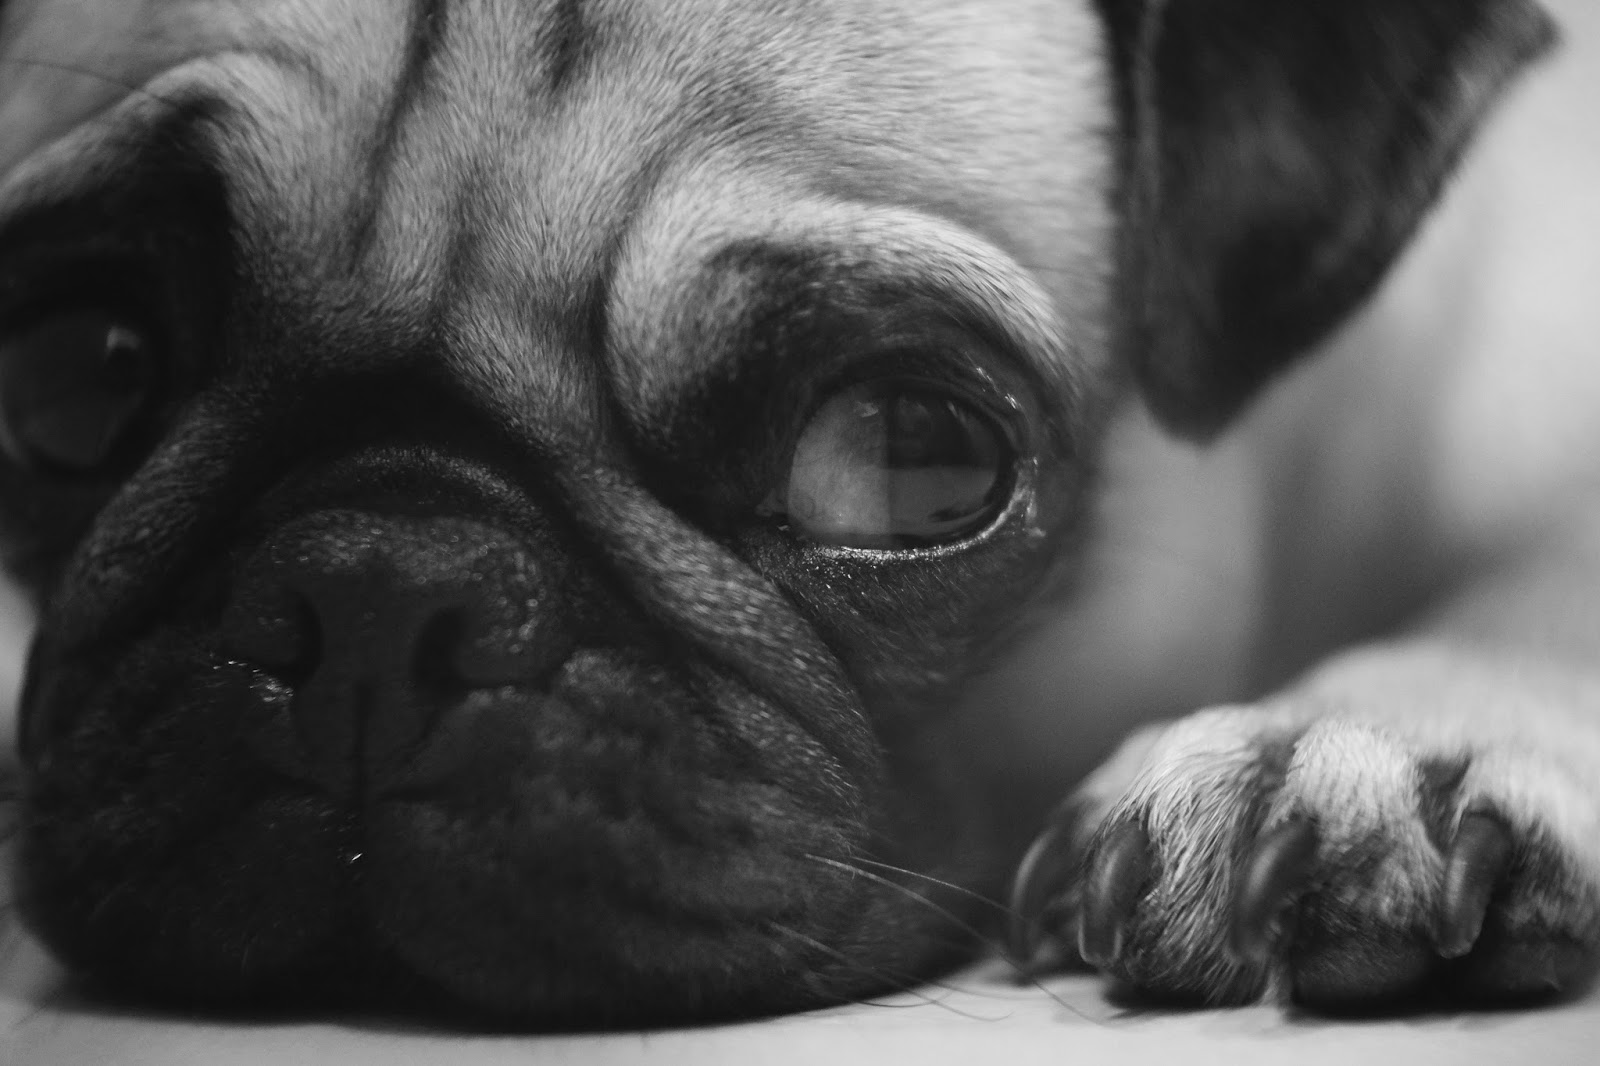 Black pug puppy looking miserable - ways to cope with feeling down this Blue Monday